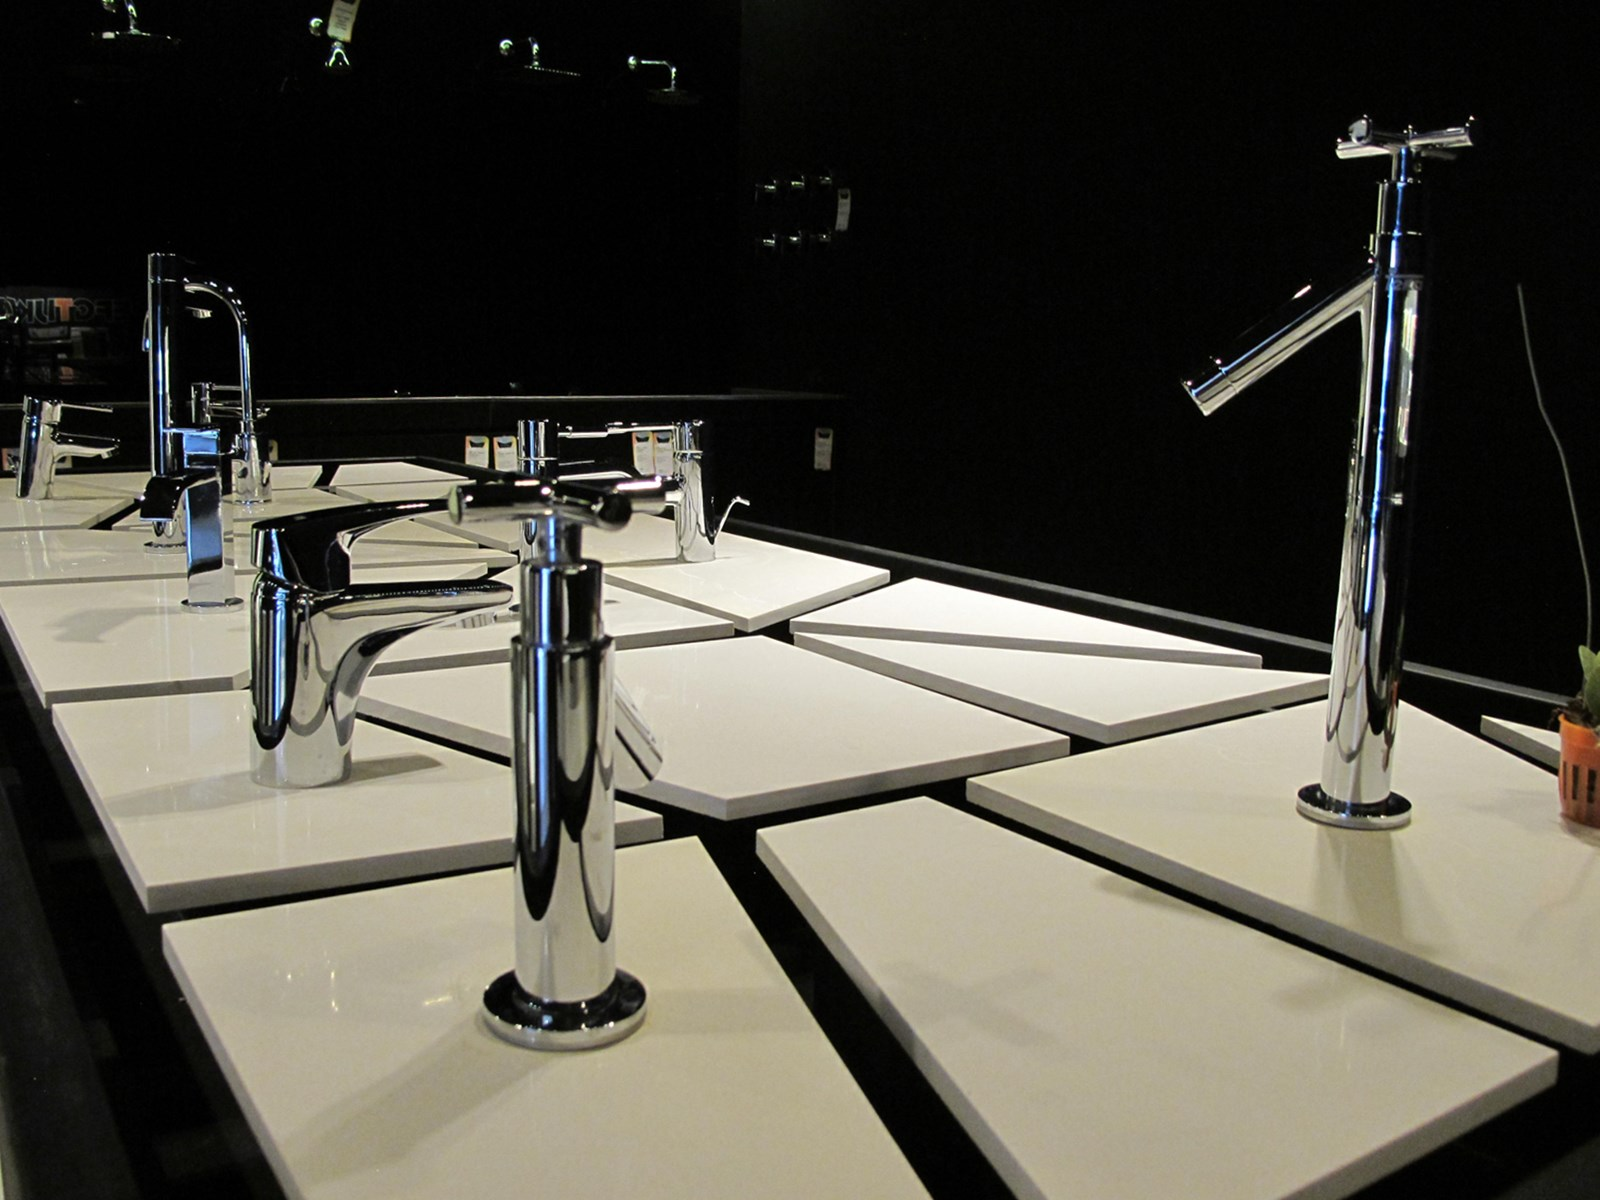 Island counter allows customers to experience and view first hand the flow of water from Teka faucets and mixers.